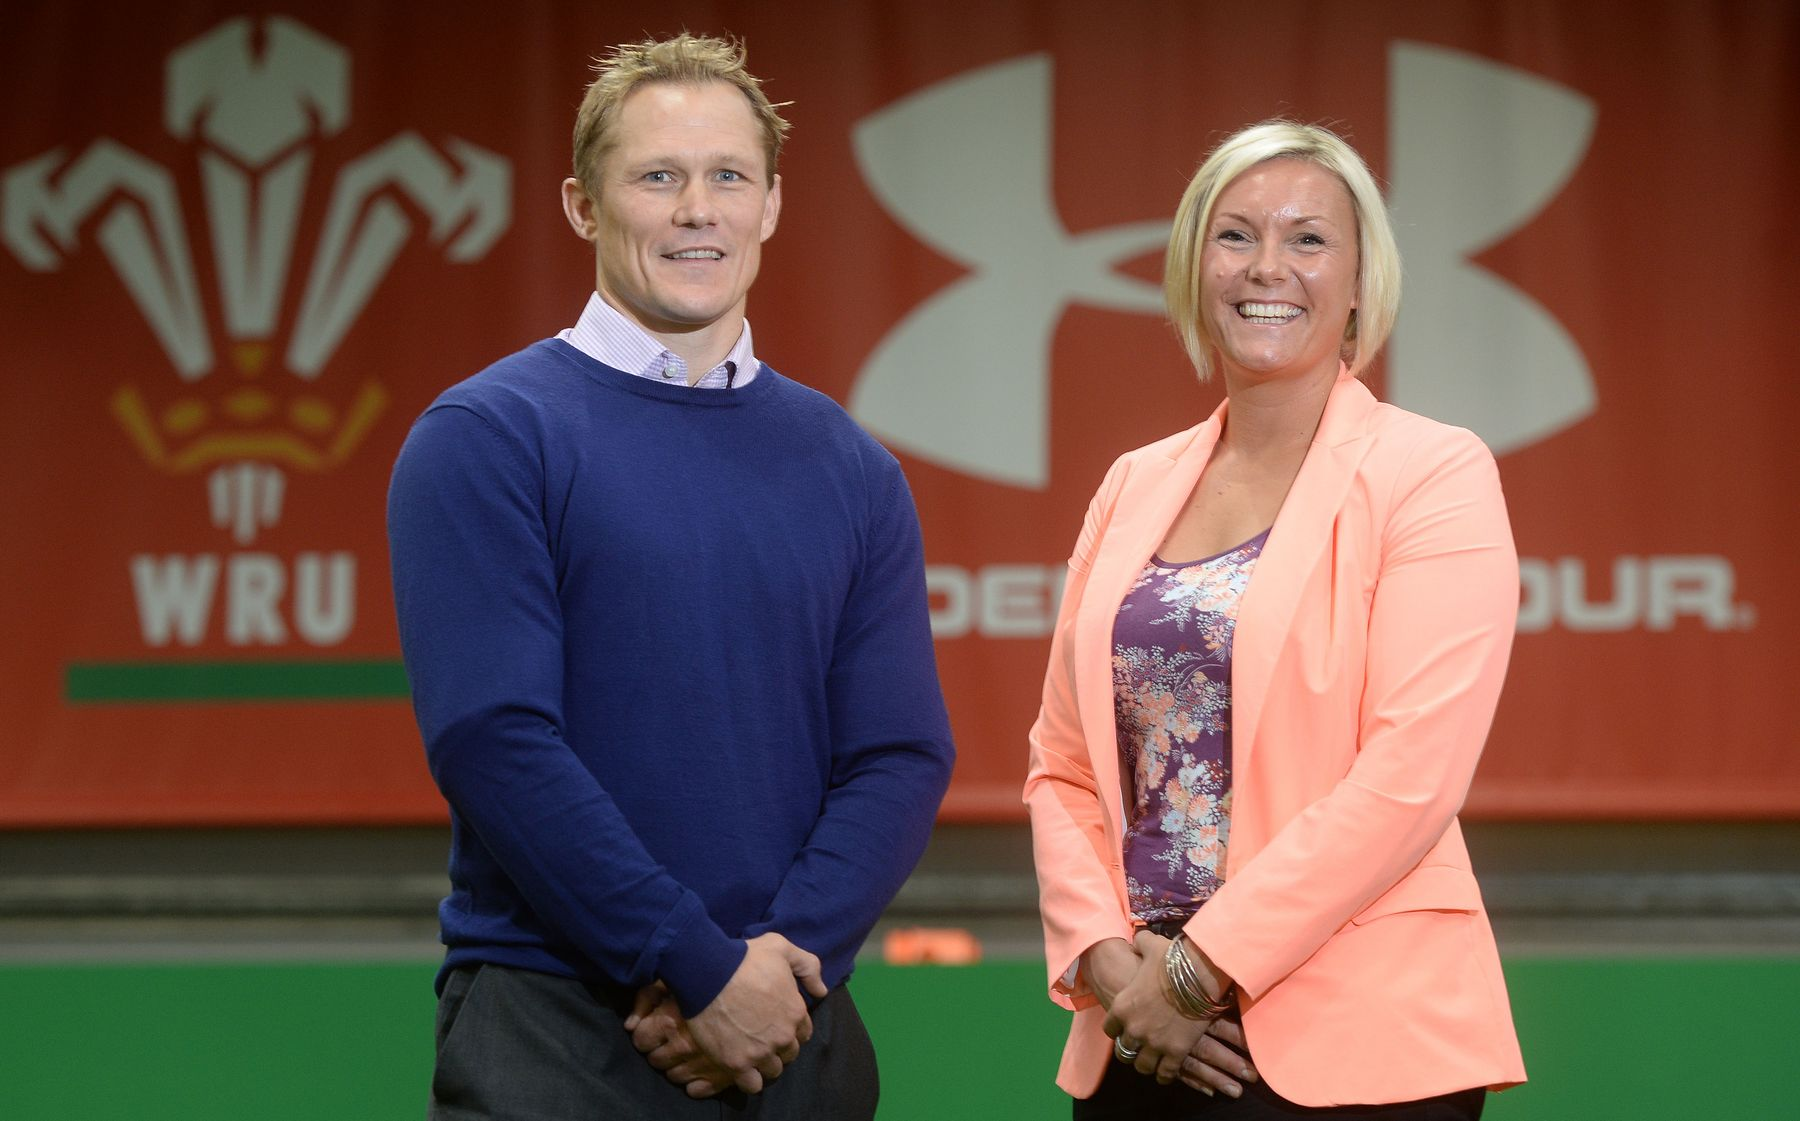 WRU National Women's Rugby Manager appointed